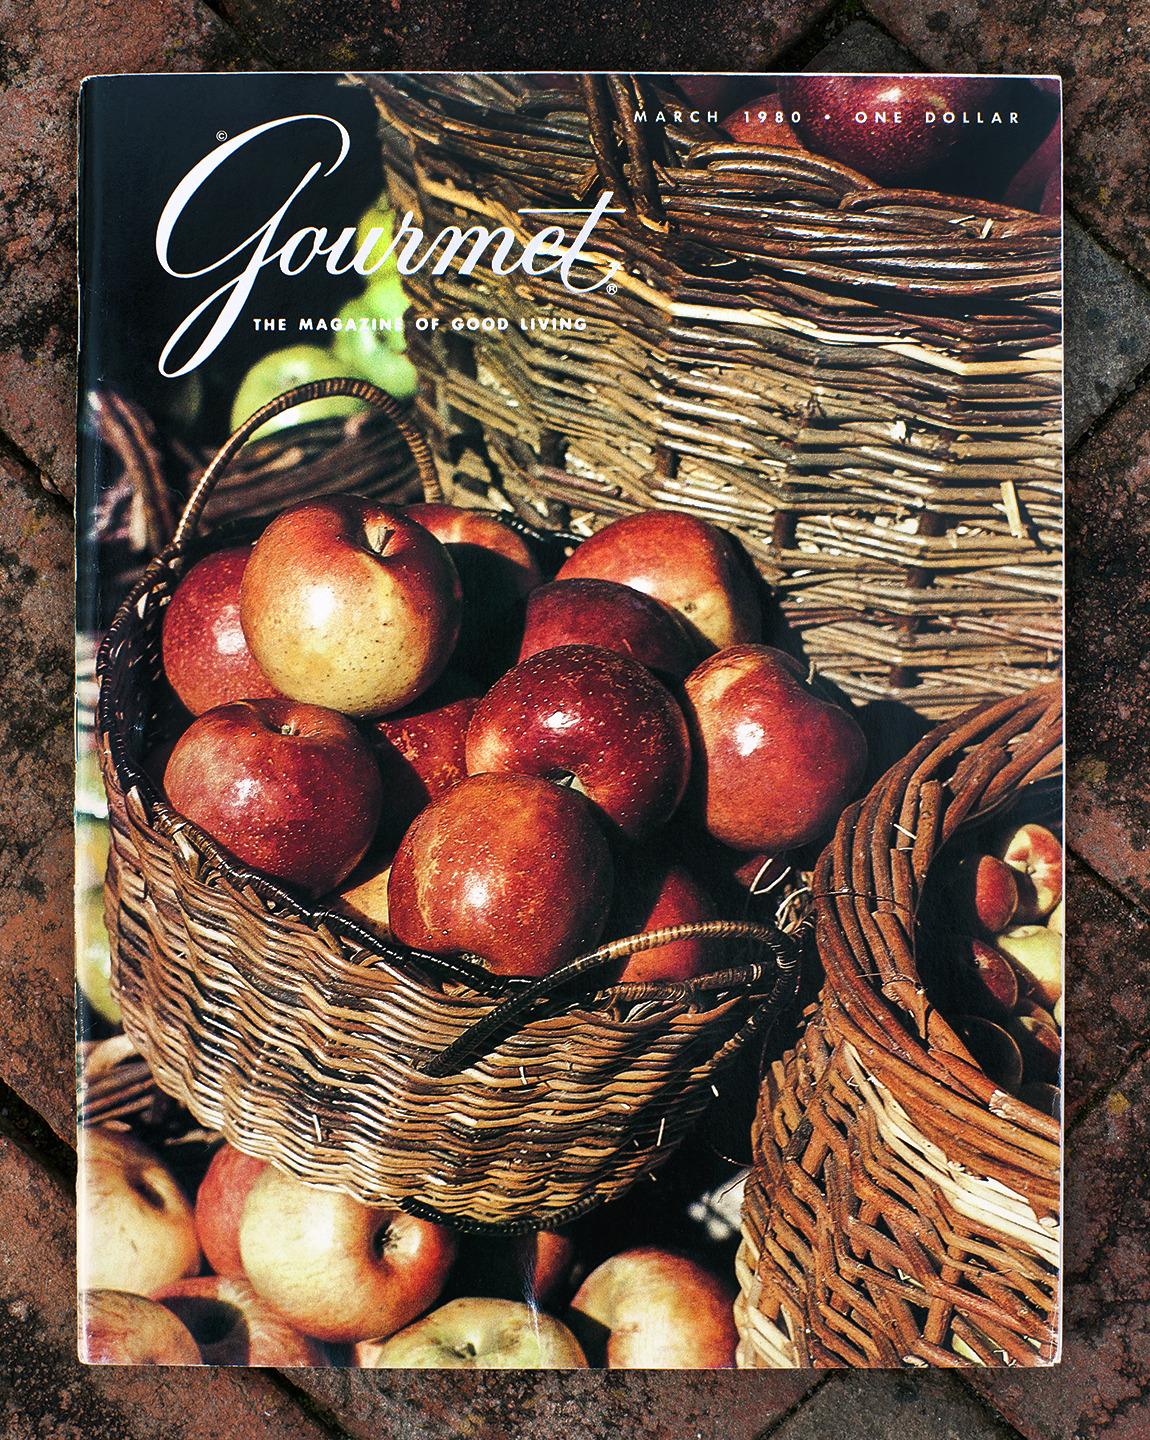 Gourmet: March 1980